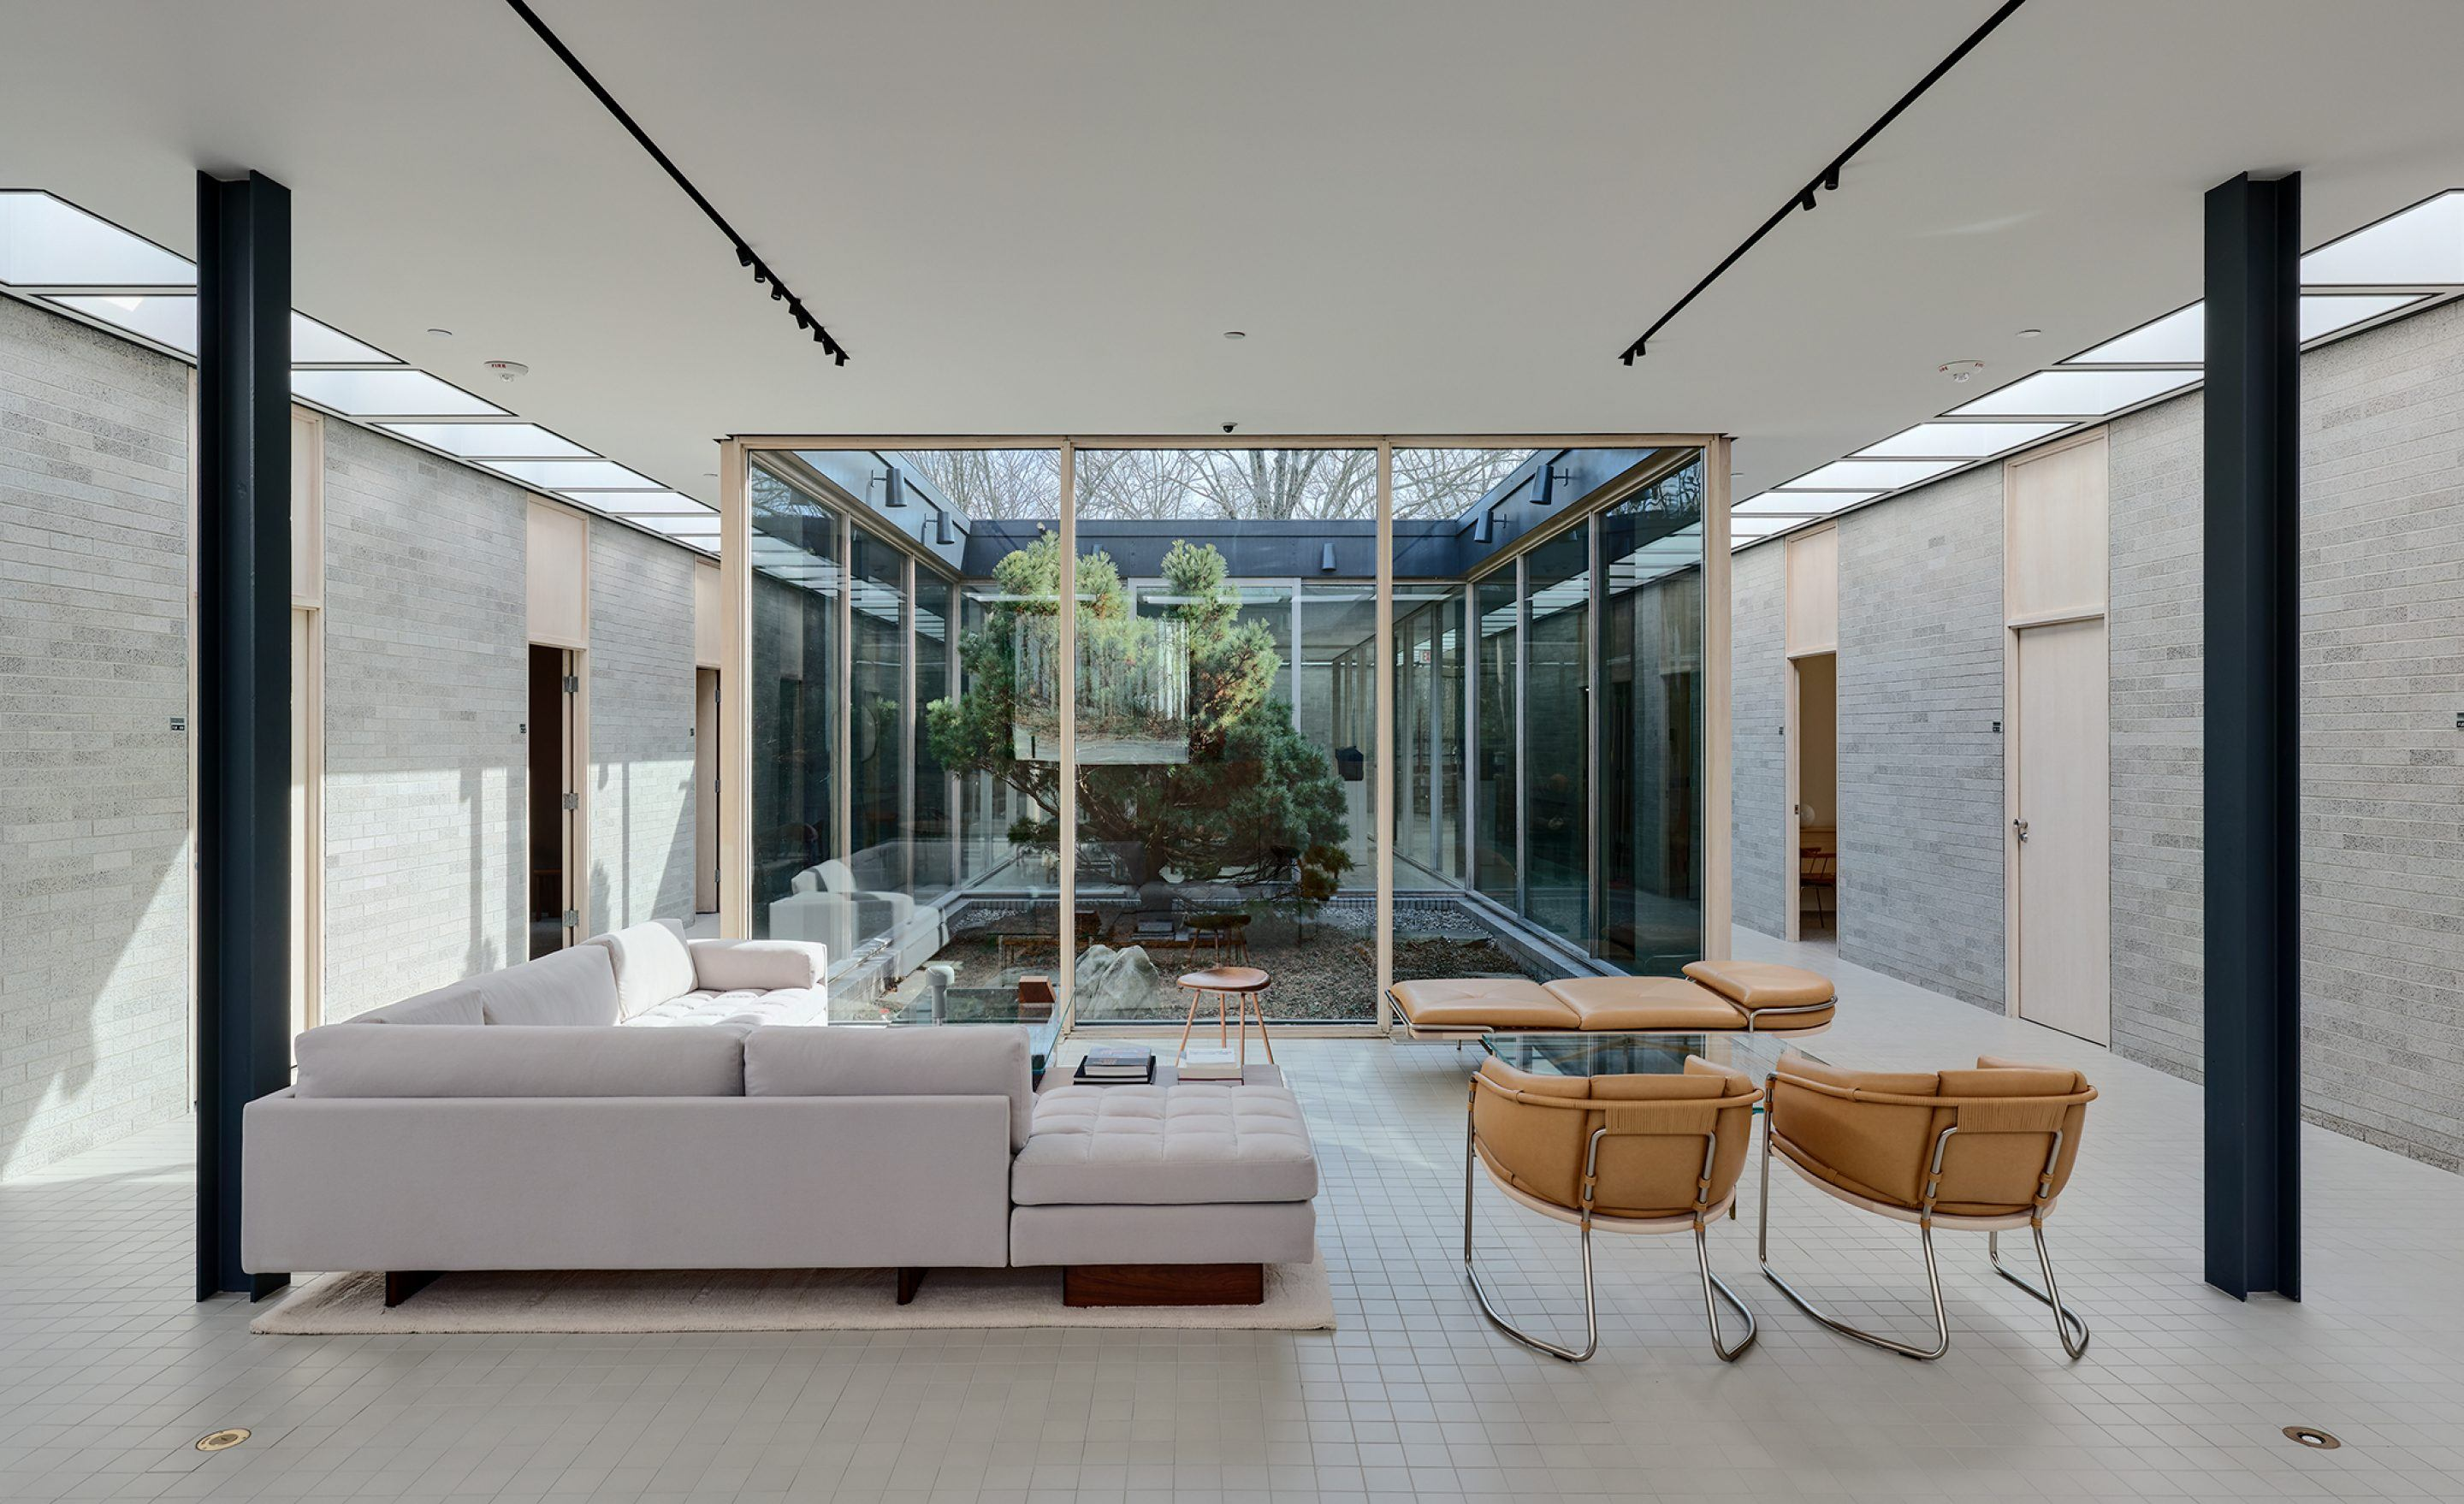 IGNANT-Architecture-Bassamfellows-Showroom-8